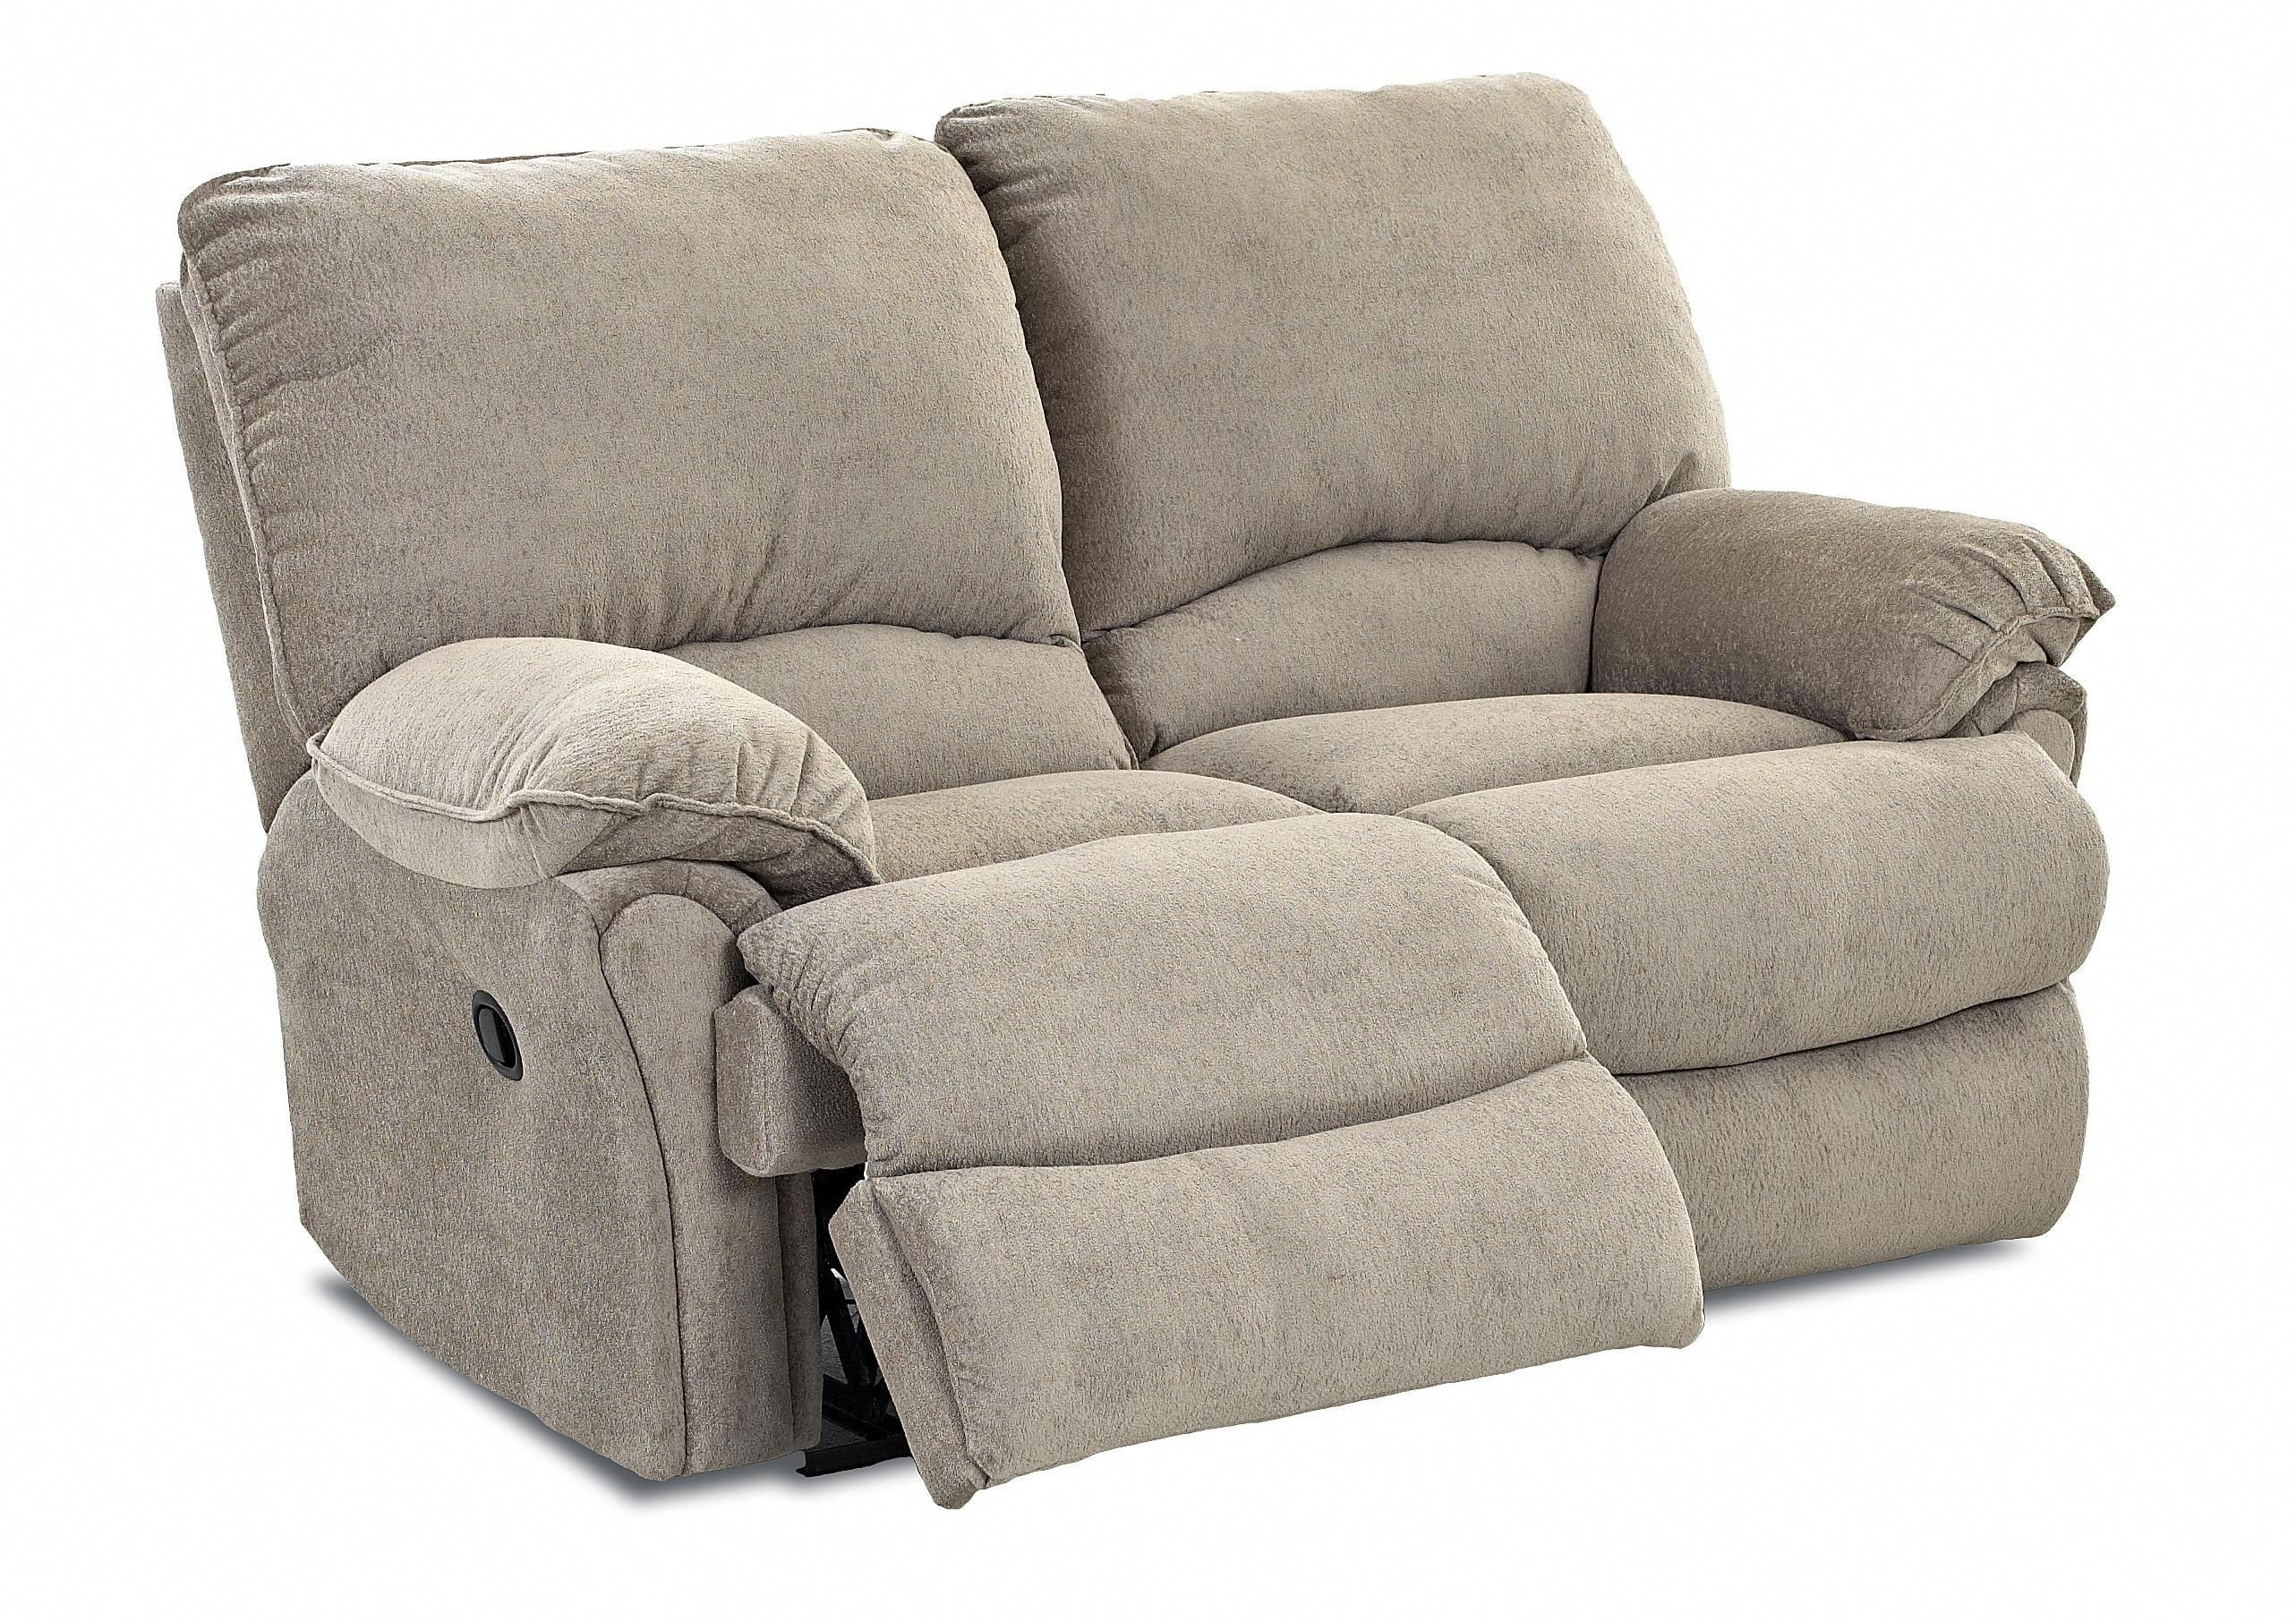 Stupendous Casual Power Reclining Loveseat Powerreclinerchairs Power Ocoug Best Dining Table And Chair Ideas Images Ocougorg